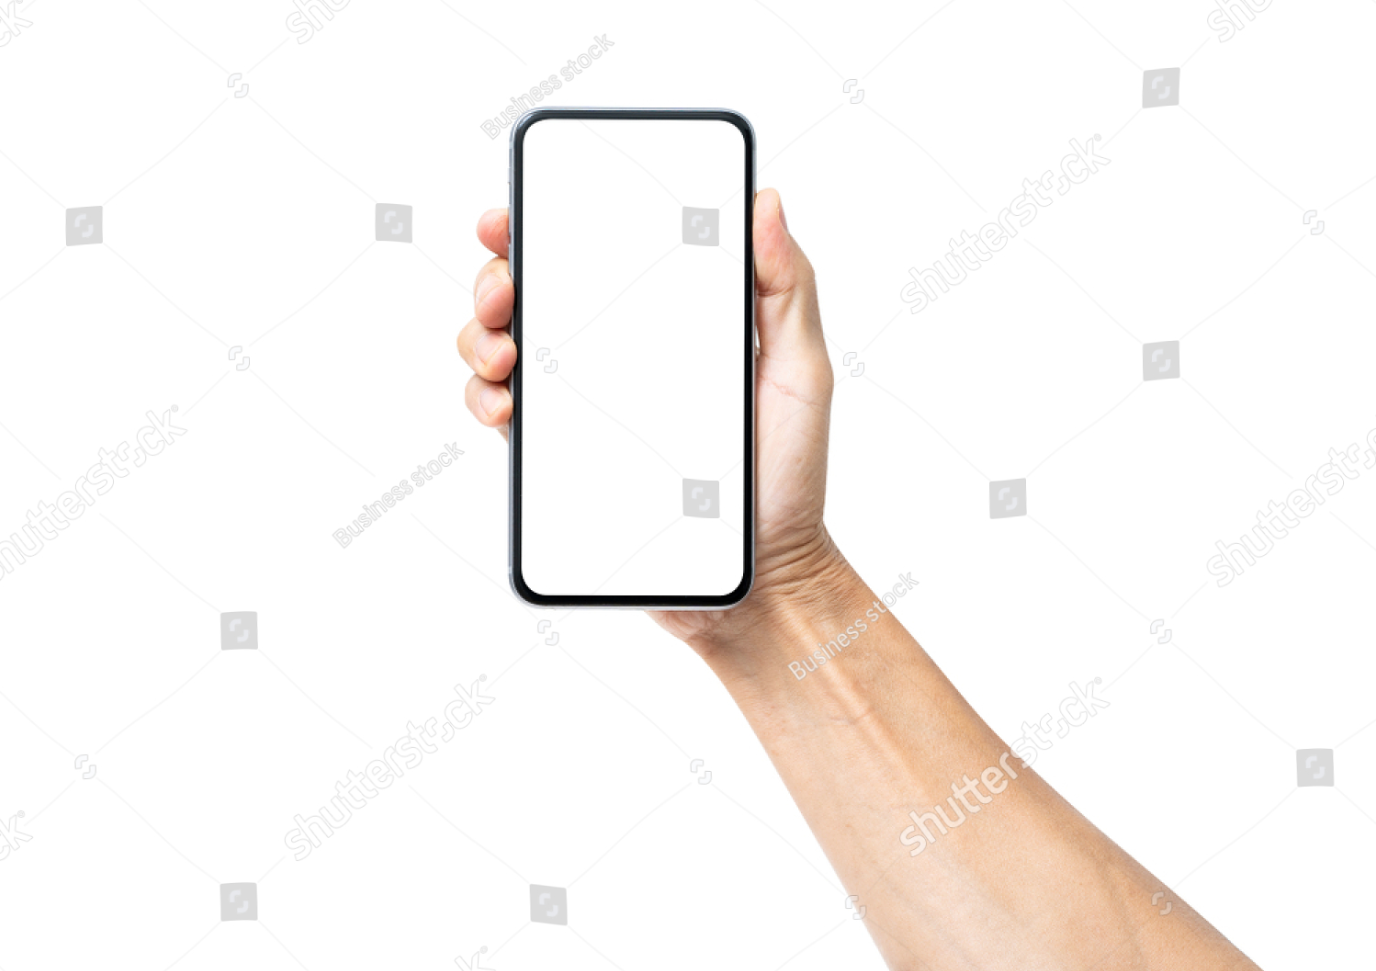 Man Hand Holding Black Smartphone Isolated On White Background Clipping Path Male Hands Photo Editing Stock Photos